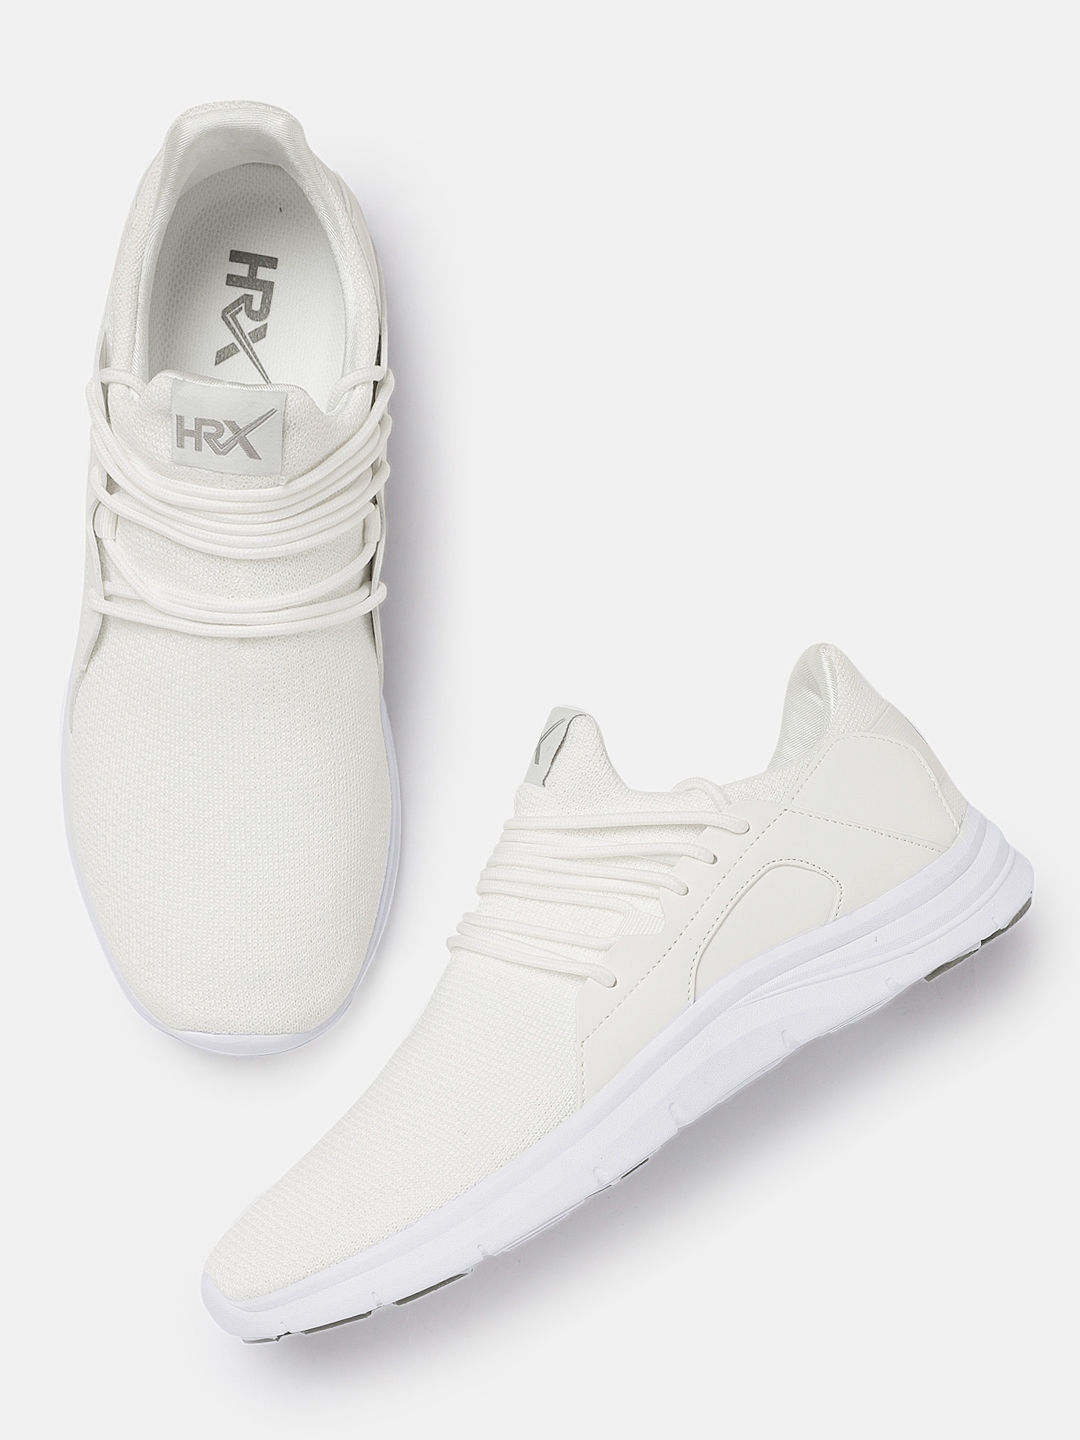 6fa32f146 Buy HRX By Hrithik Roshan Men White Pro Sneakers - Casual Shoes for ...